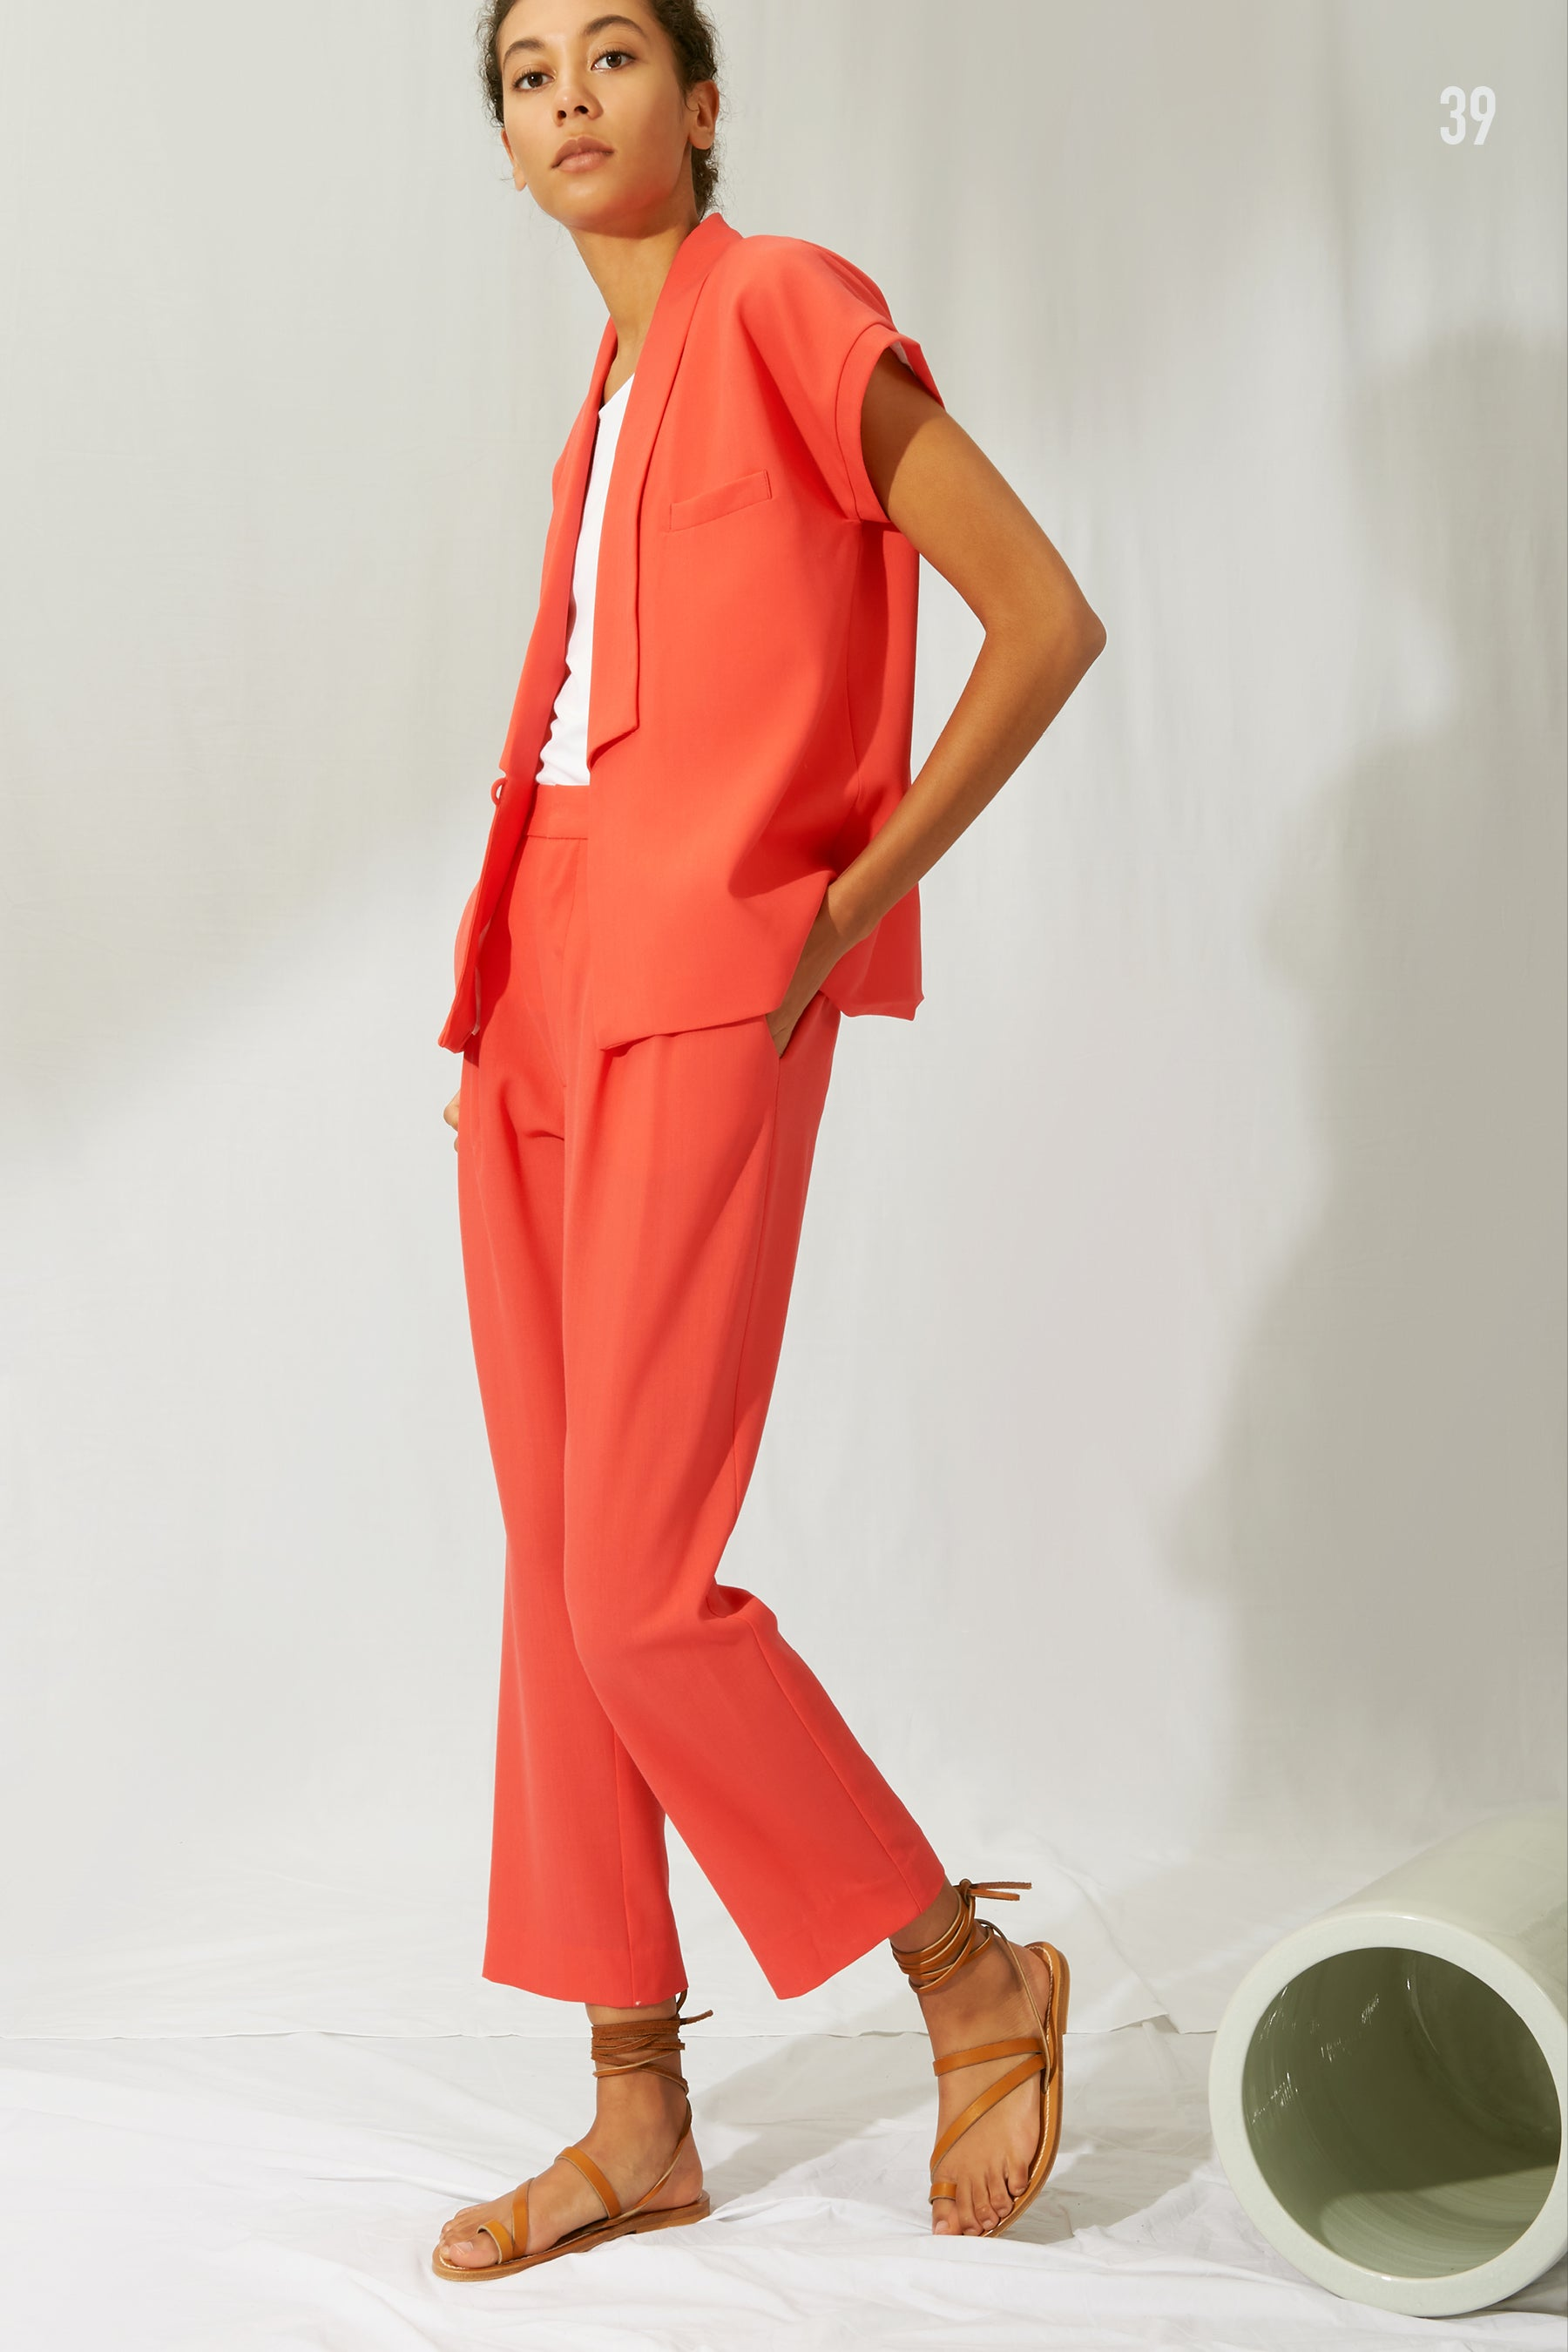 Kal Rieman Spring 2020 Lookbook Look 39